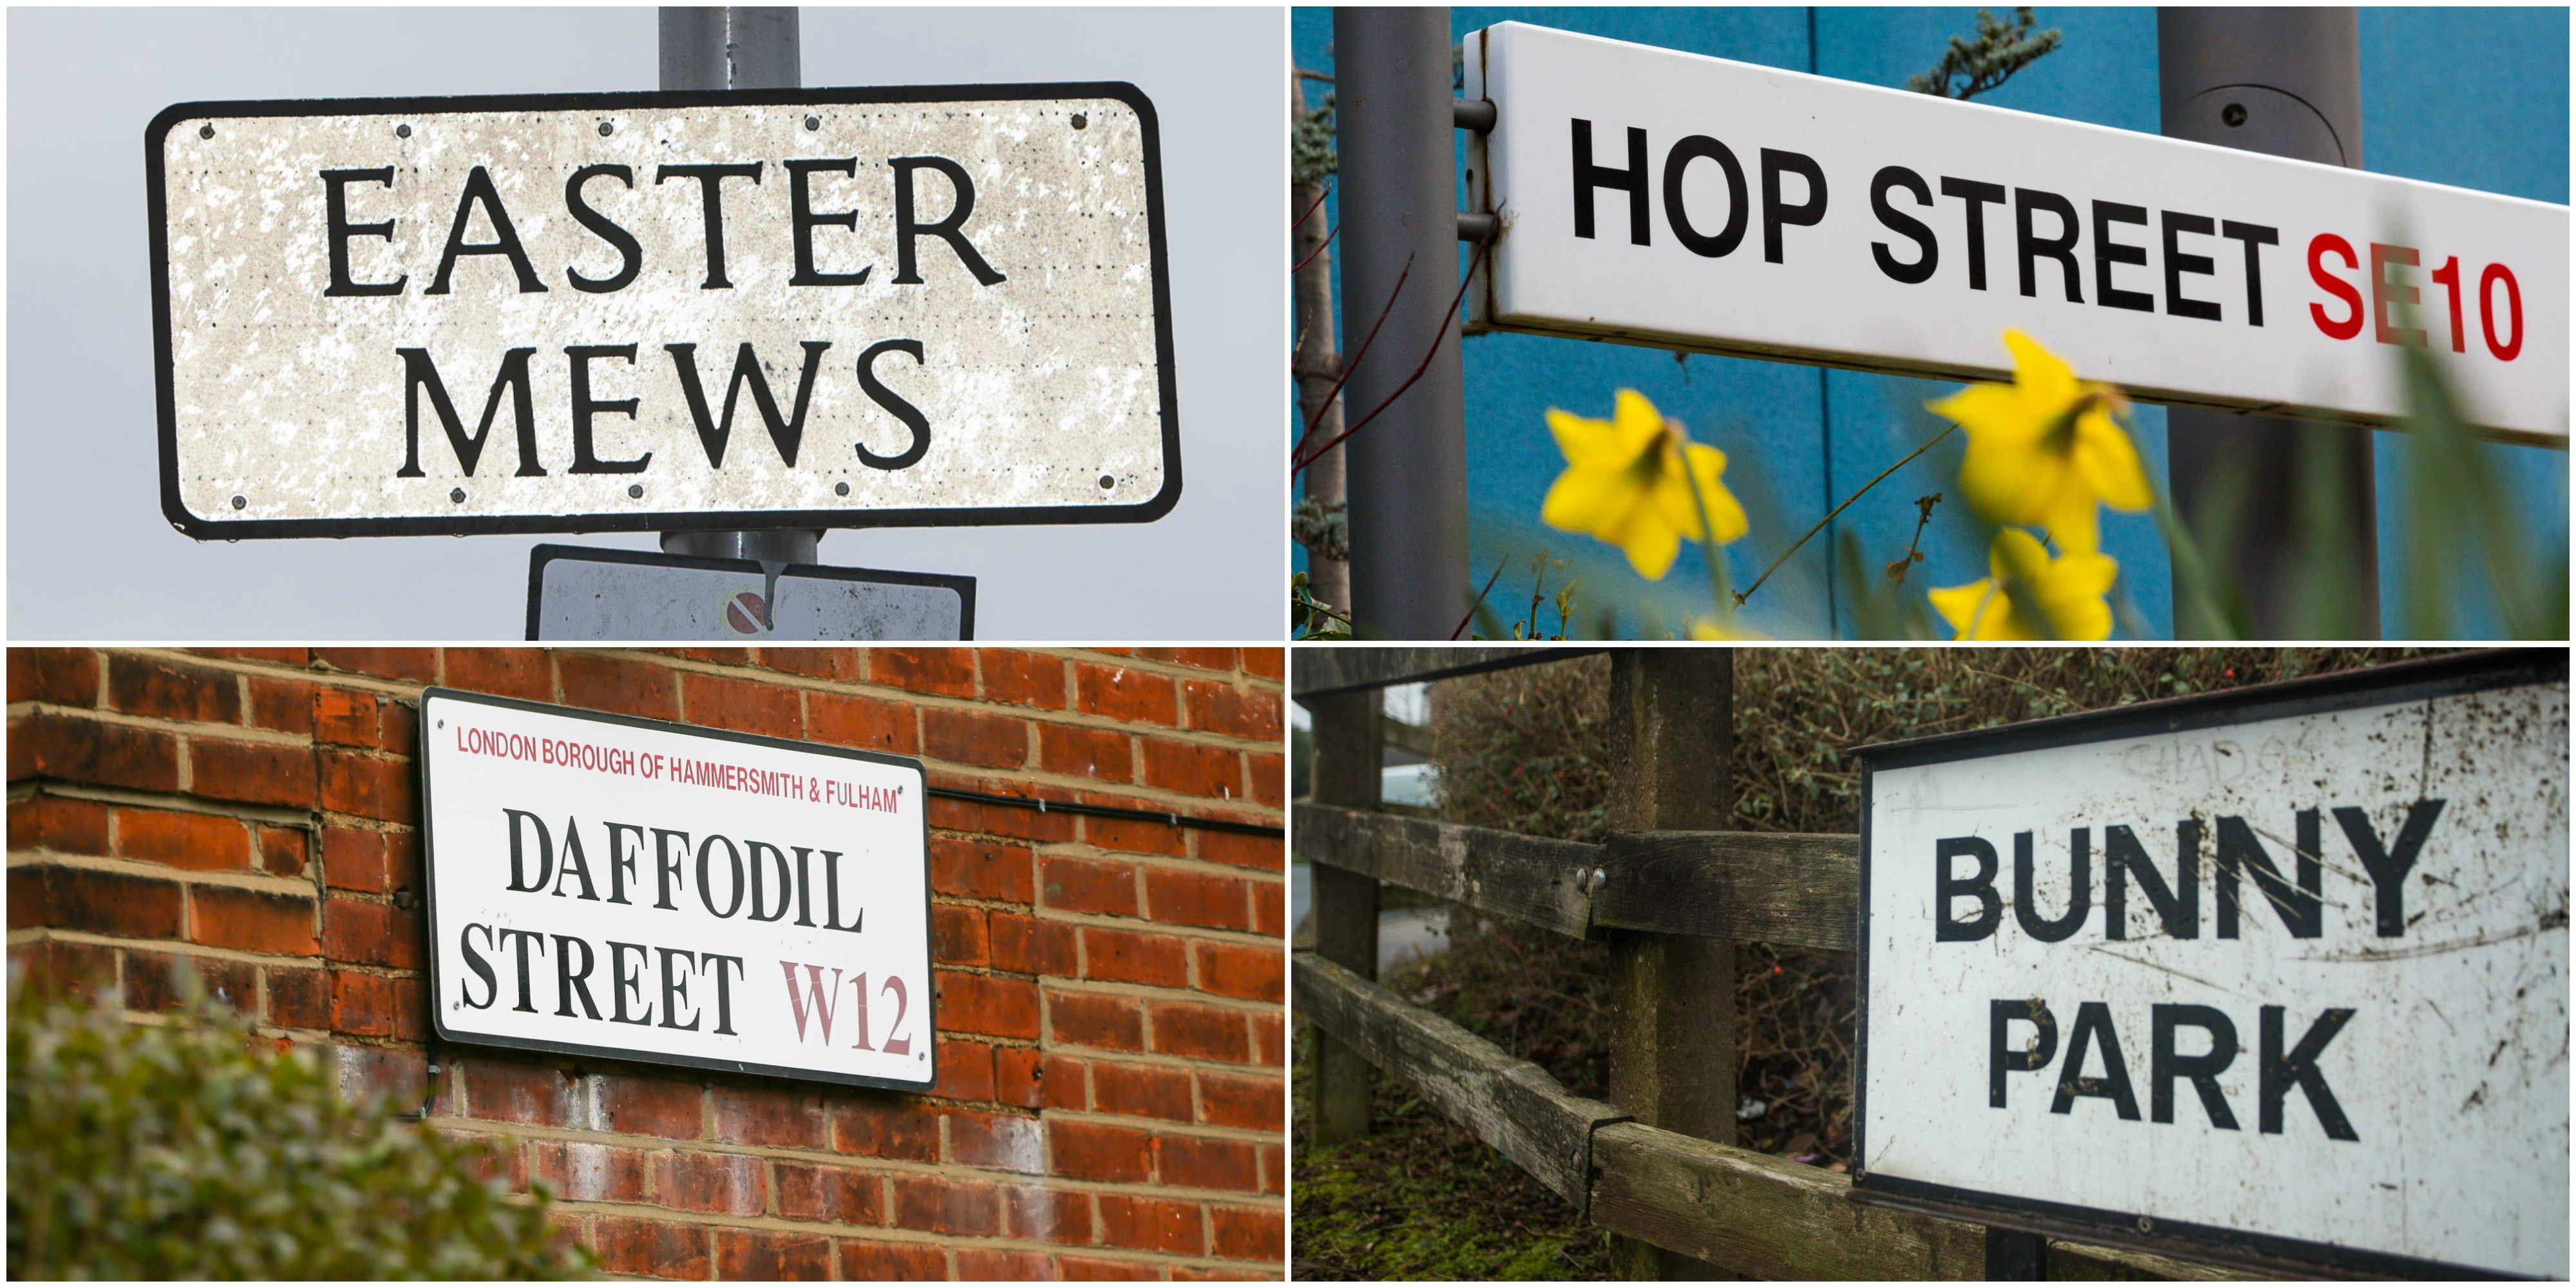 Top 20 Easter-themed street name hotspots in the UK